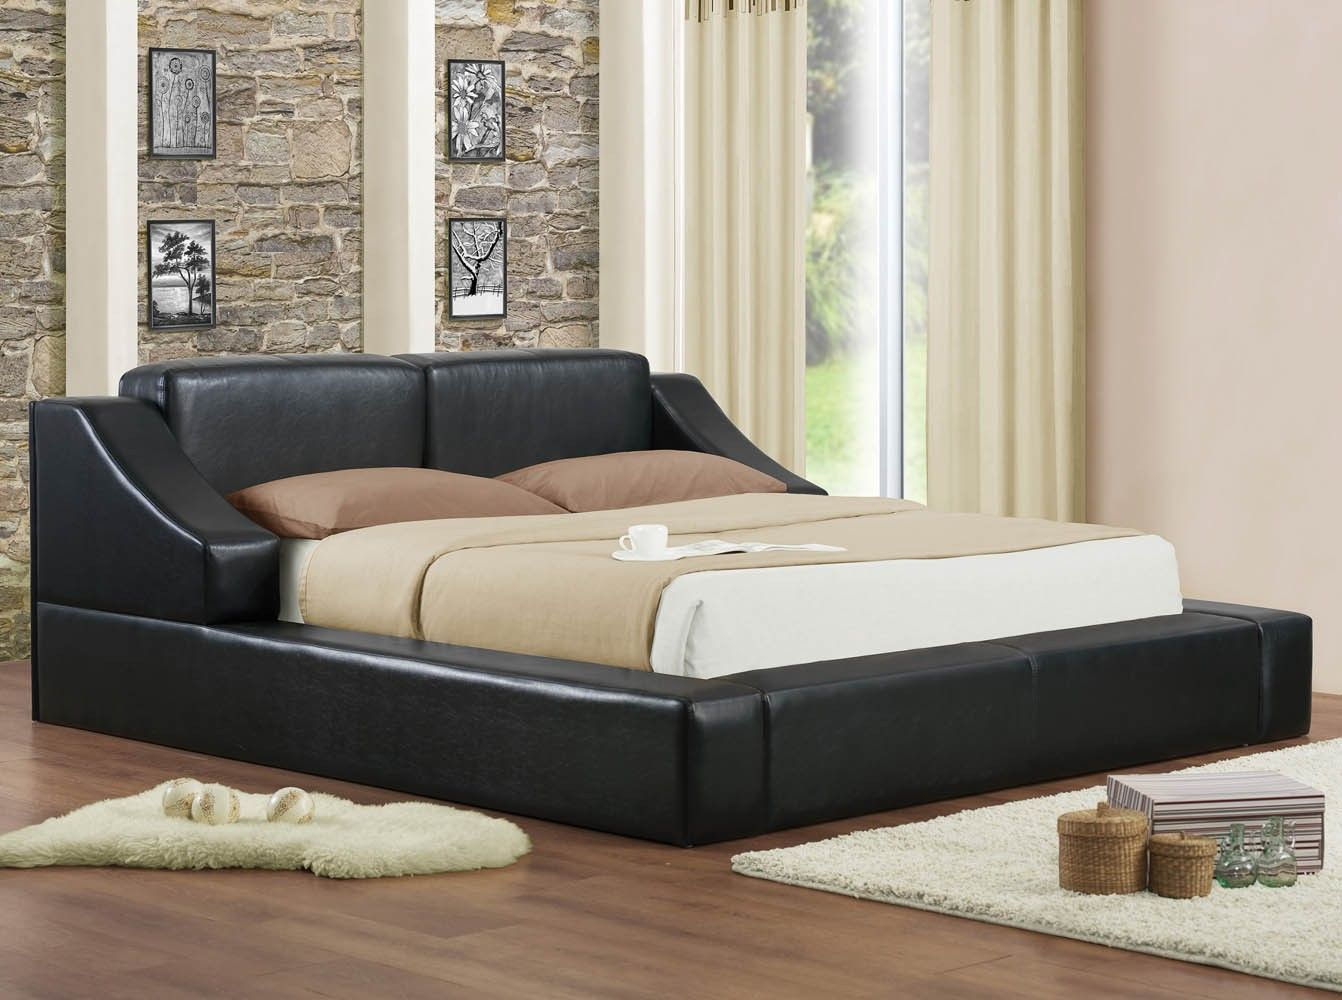 Queen modern high end white or black platform beds without